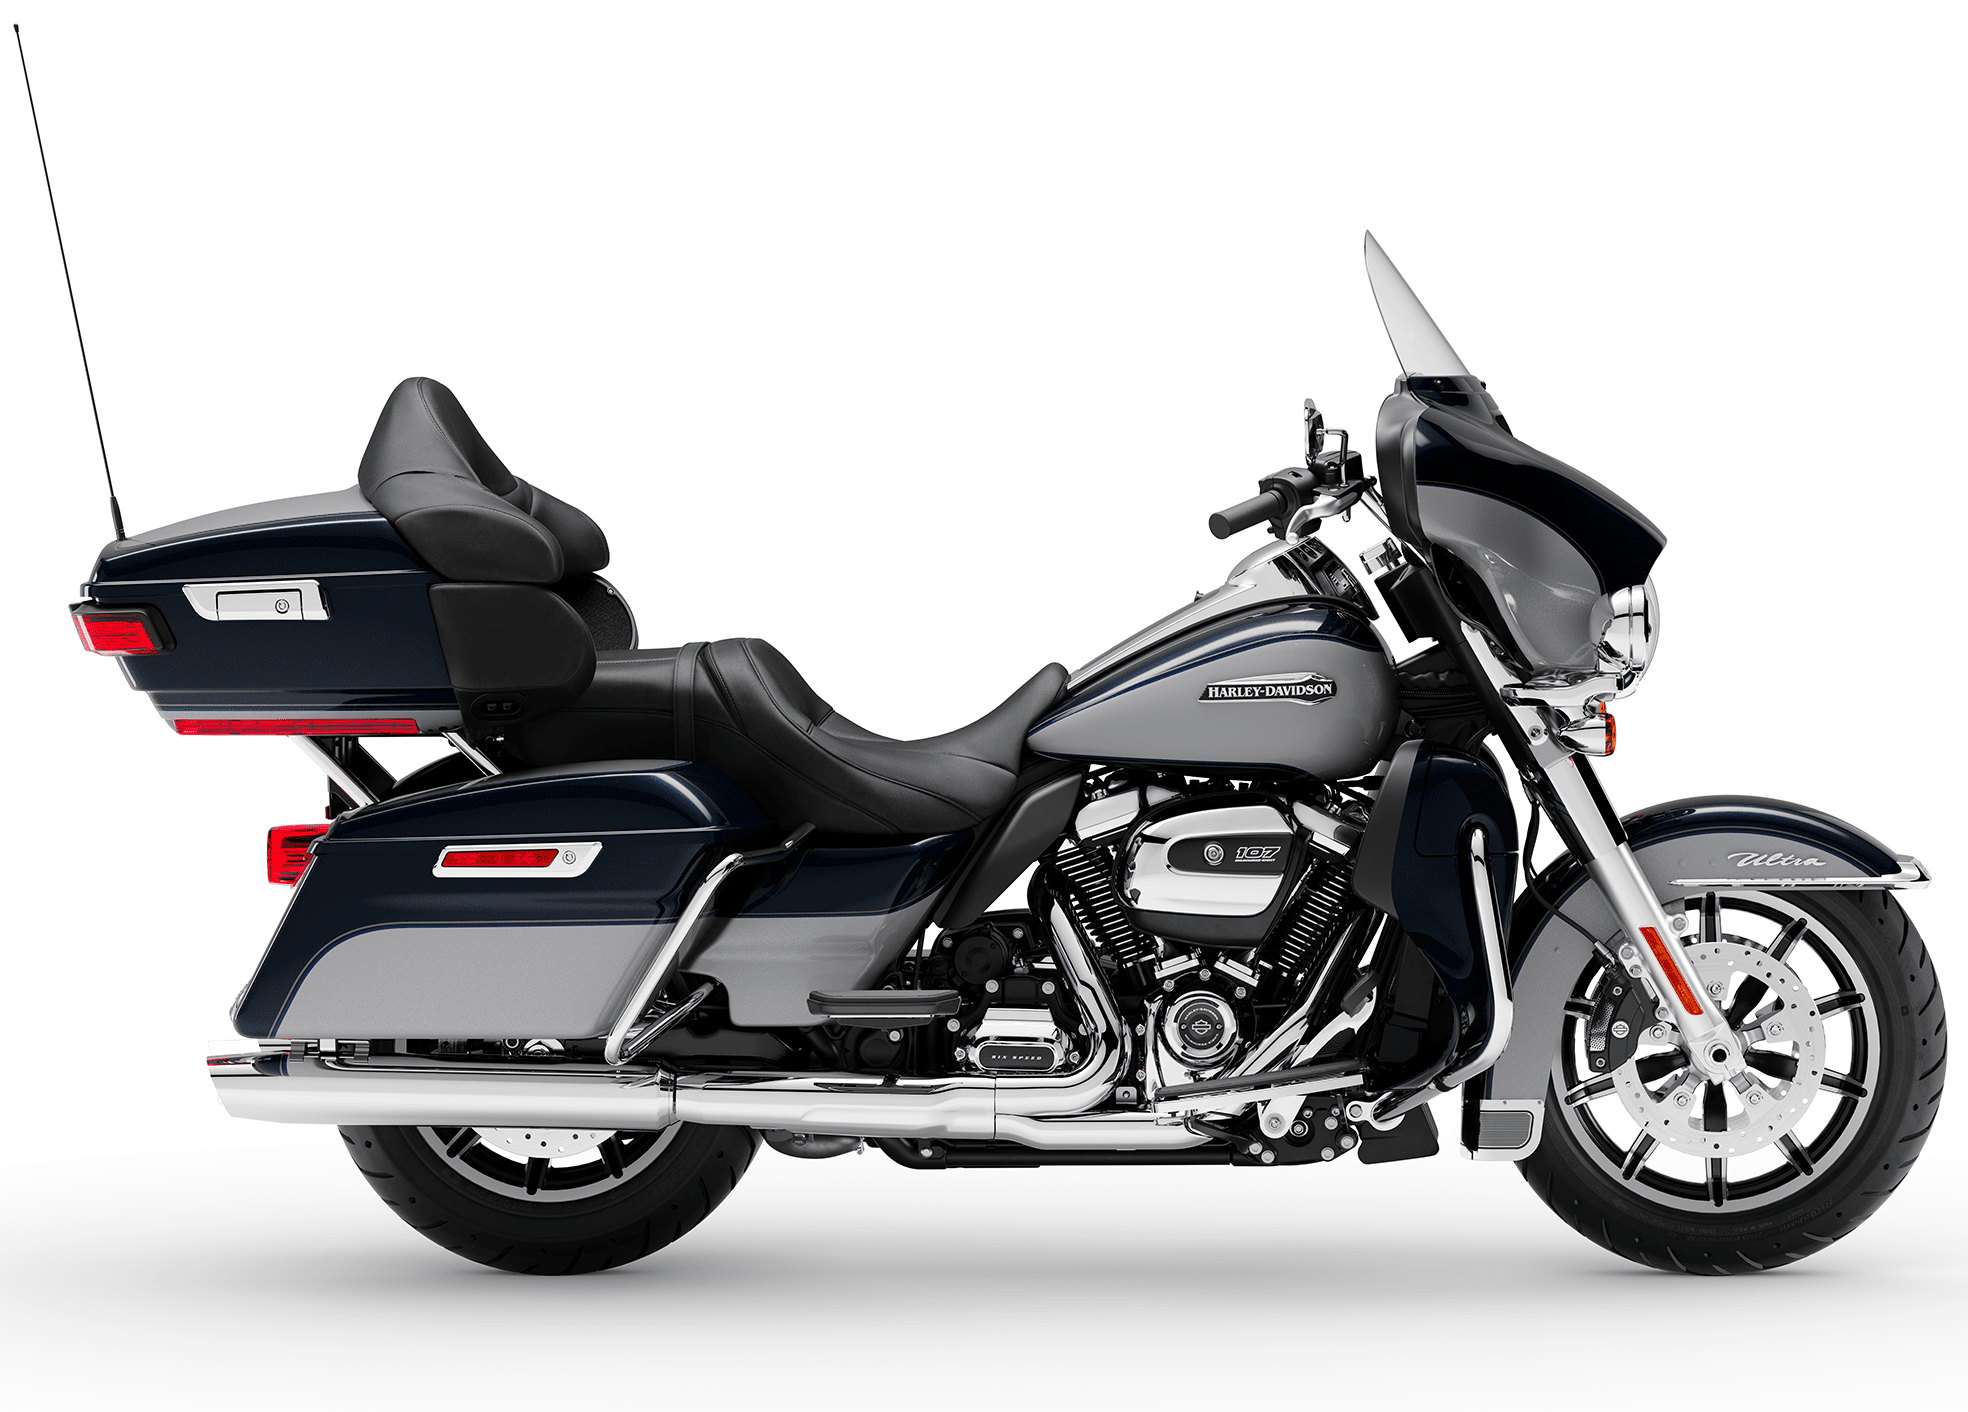 2019 Harley-Davidson H-D Touring Electra Glide Ultra Classic Midnight Blue Barracuda Silver